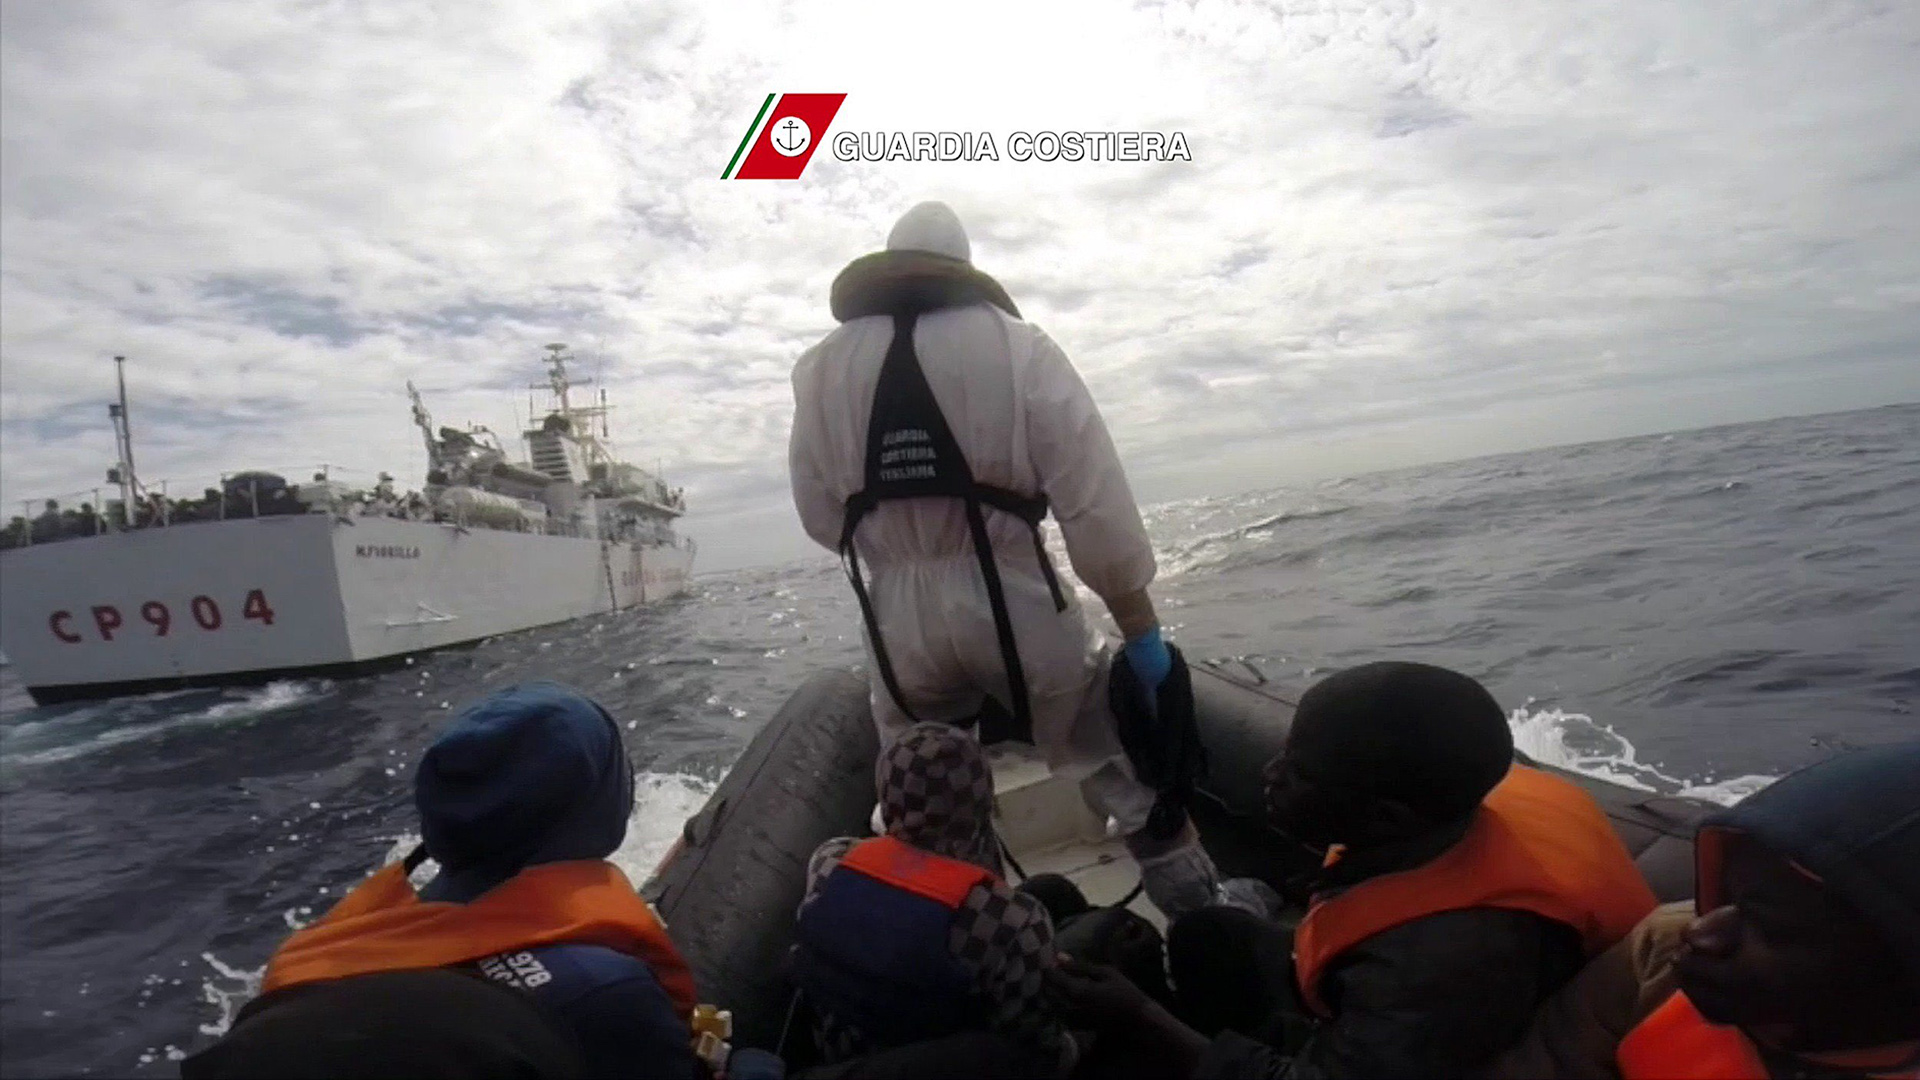 More Than 4,200 Migrants Rescued From Mediterranean Sea in 5 Days